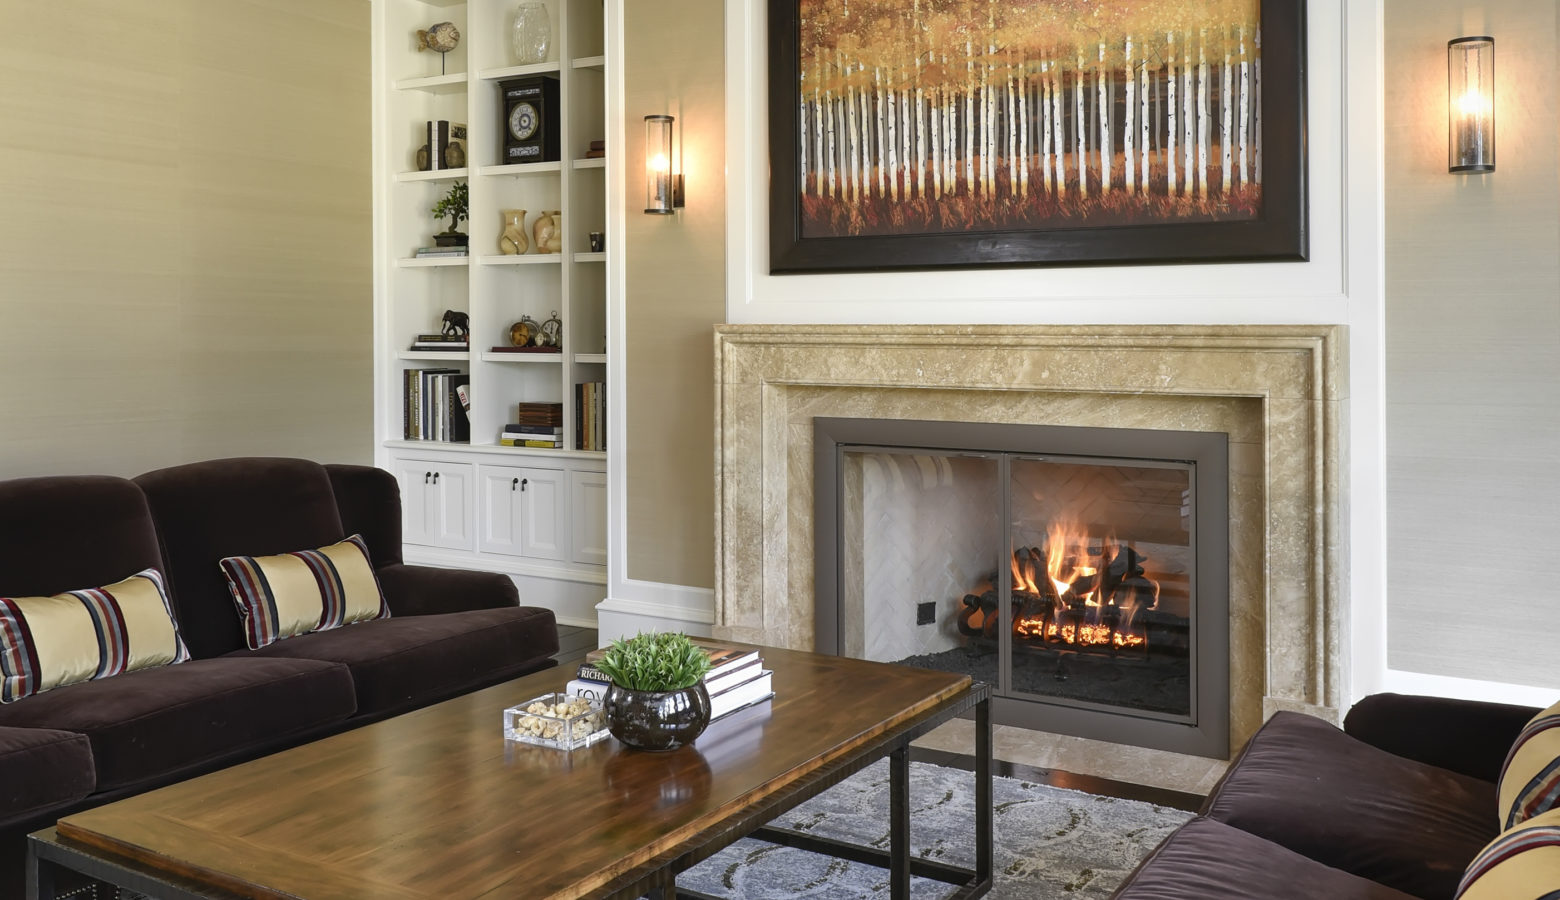 6 Interior Design and Architecture Ideas to Make Your Home More Cozy